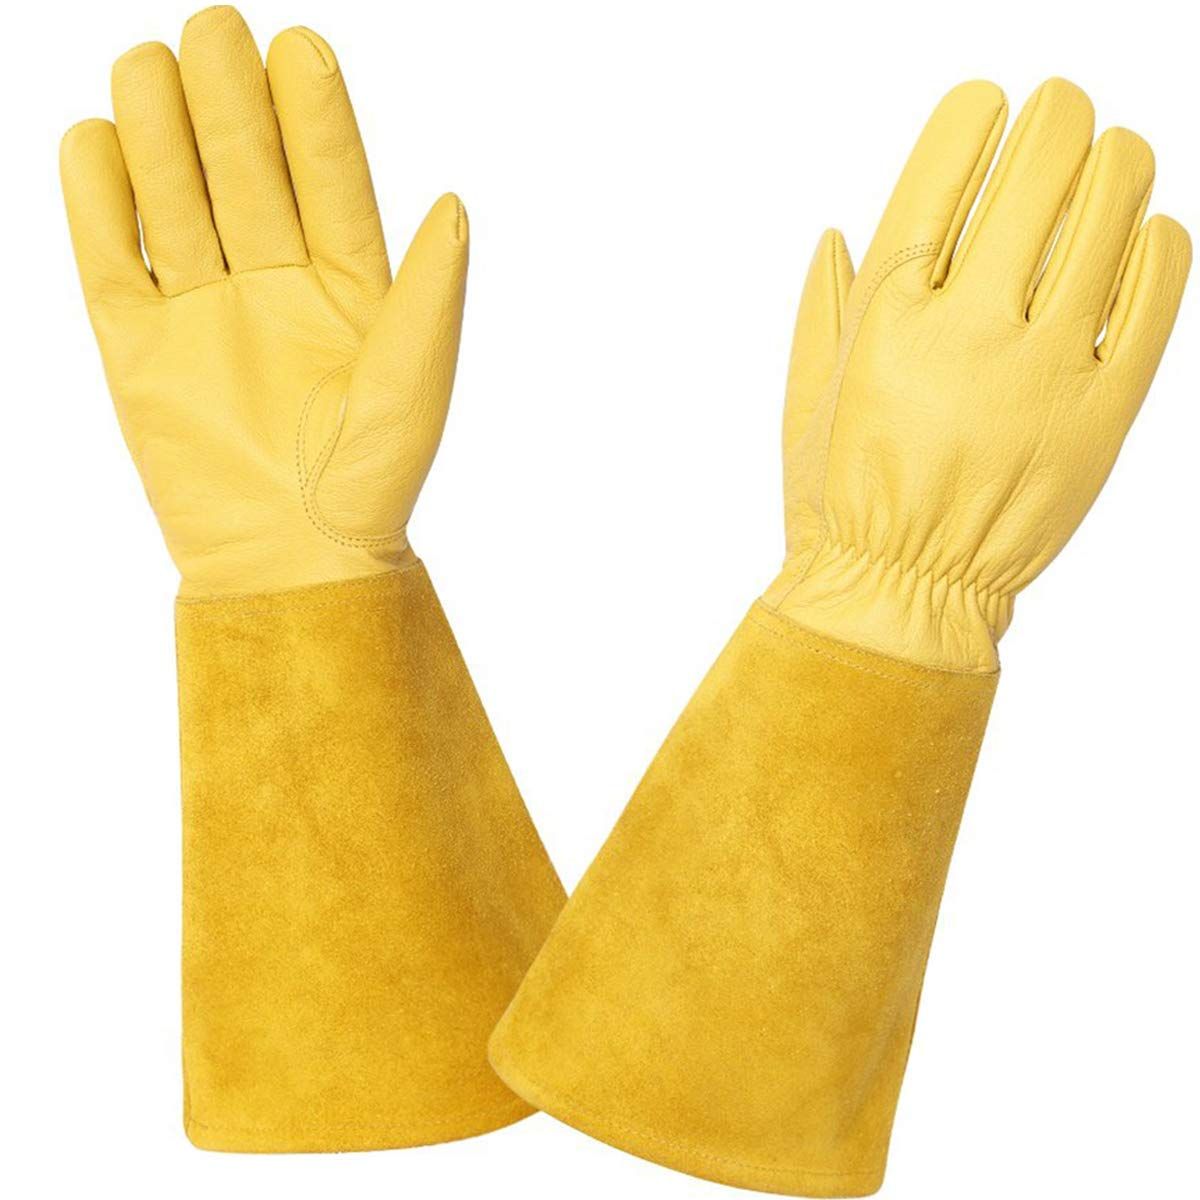 KIM YUAN Rose Pruning Gloves for Men and Women. Thorn Proof Goatskin Leather Gardening Gloves with Long Sheepskin Gauntlet to Protect Your Arms Until The Elbow (YELLOW)